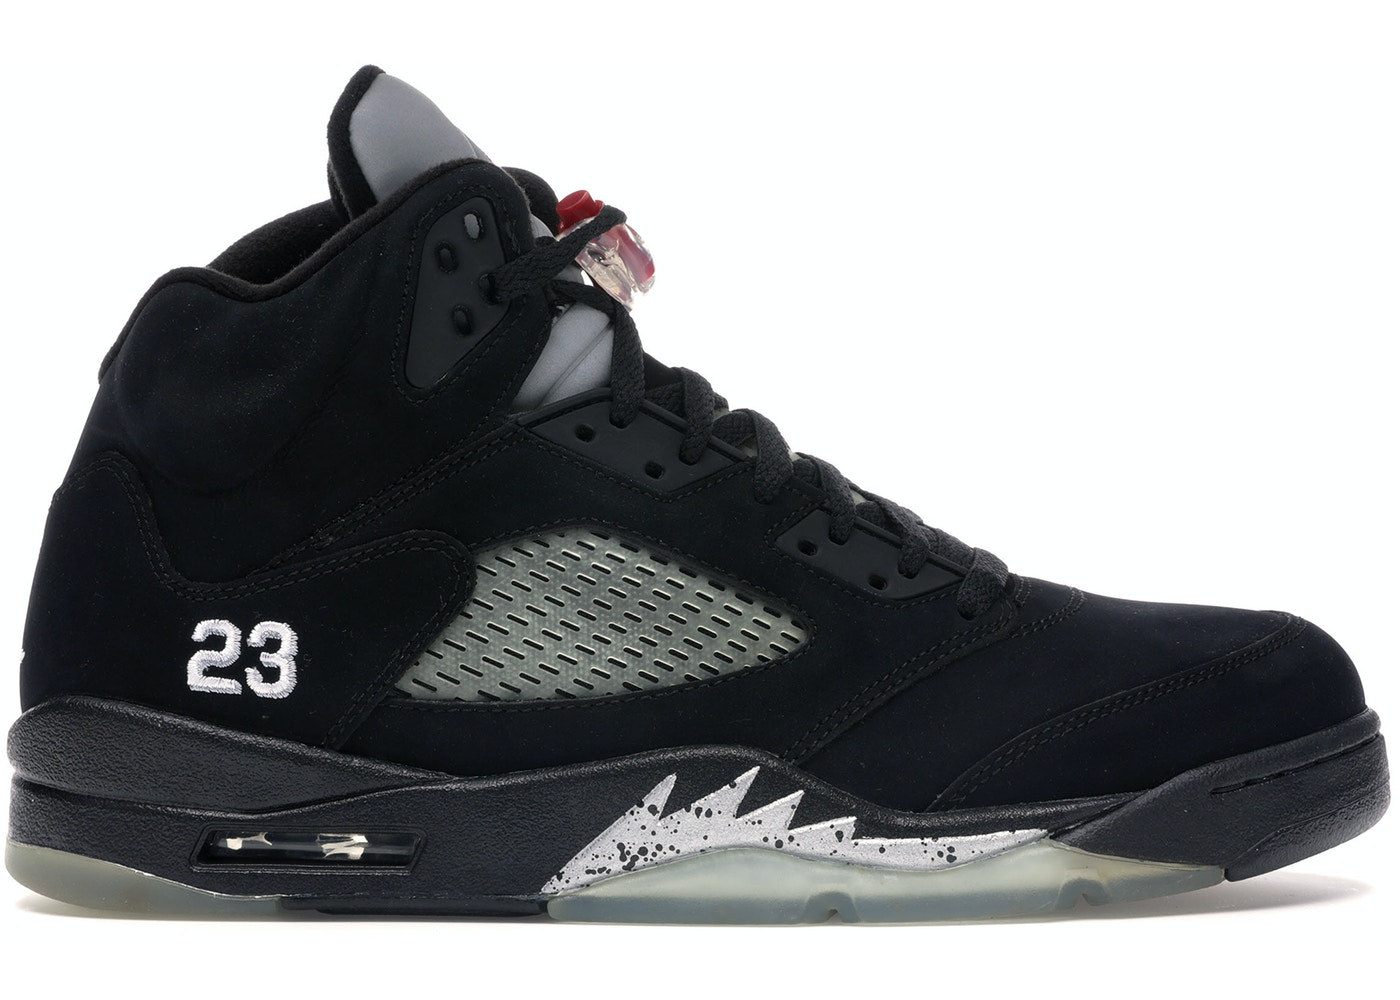 check out f1cf9 a5ea1 Jordan 5 Retro Black Metallic (2011)